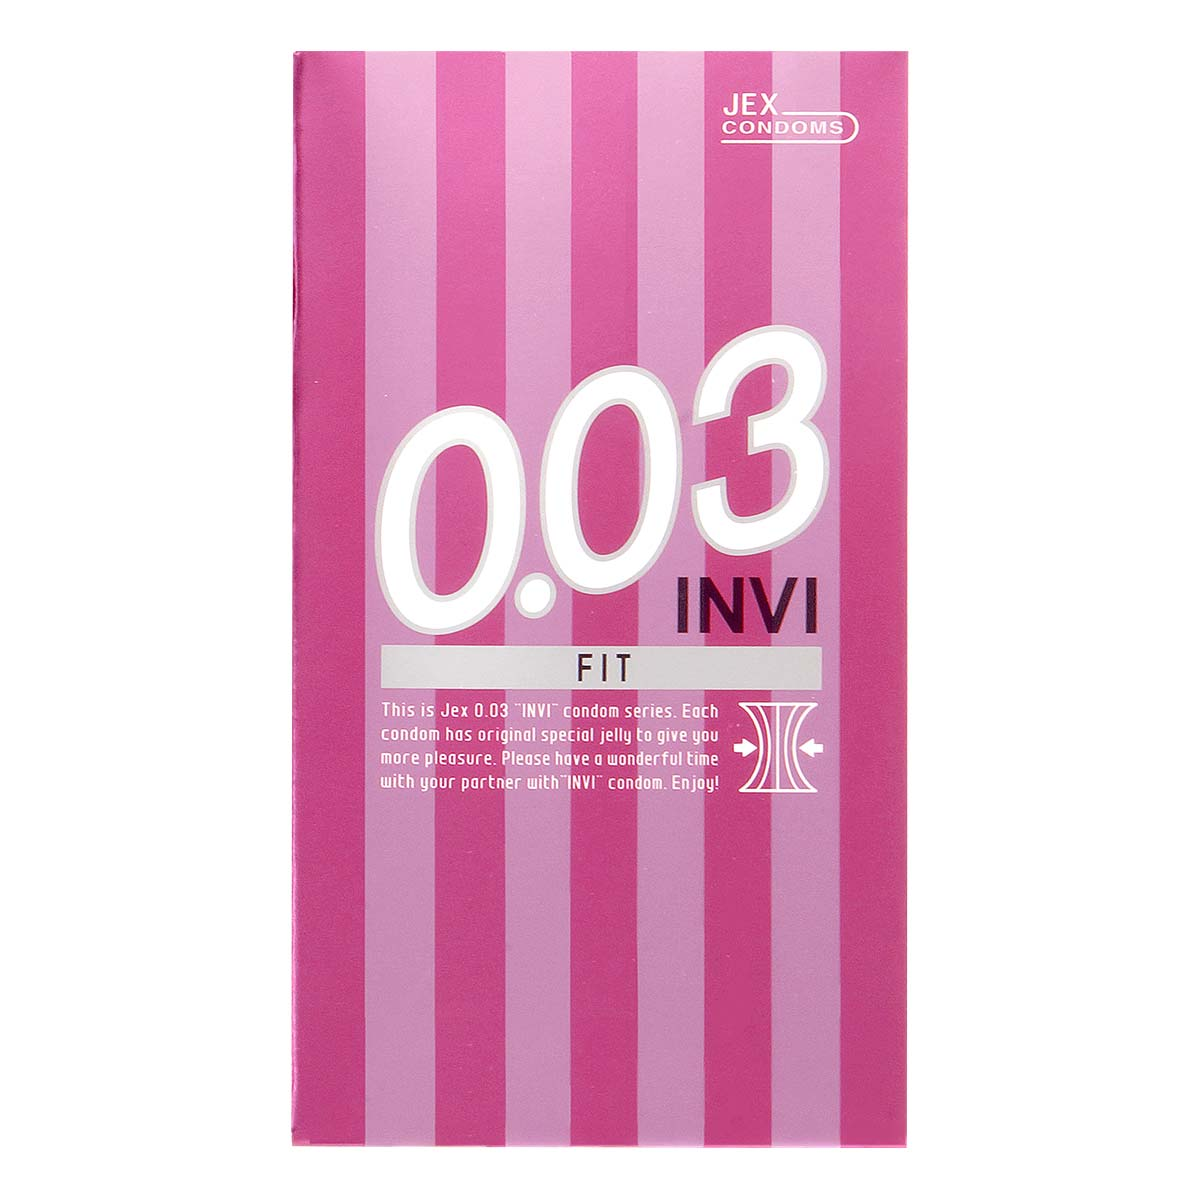 INVI 0.03 Fit 8's Pack Latex Condom